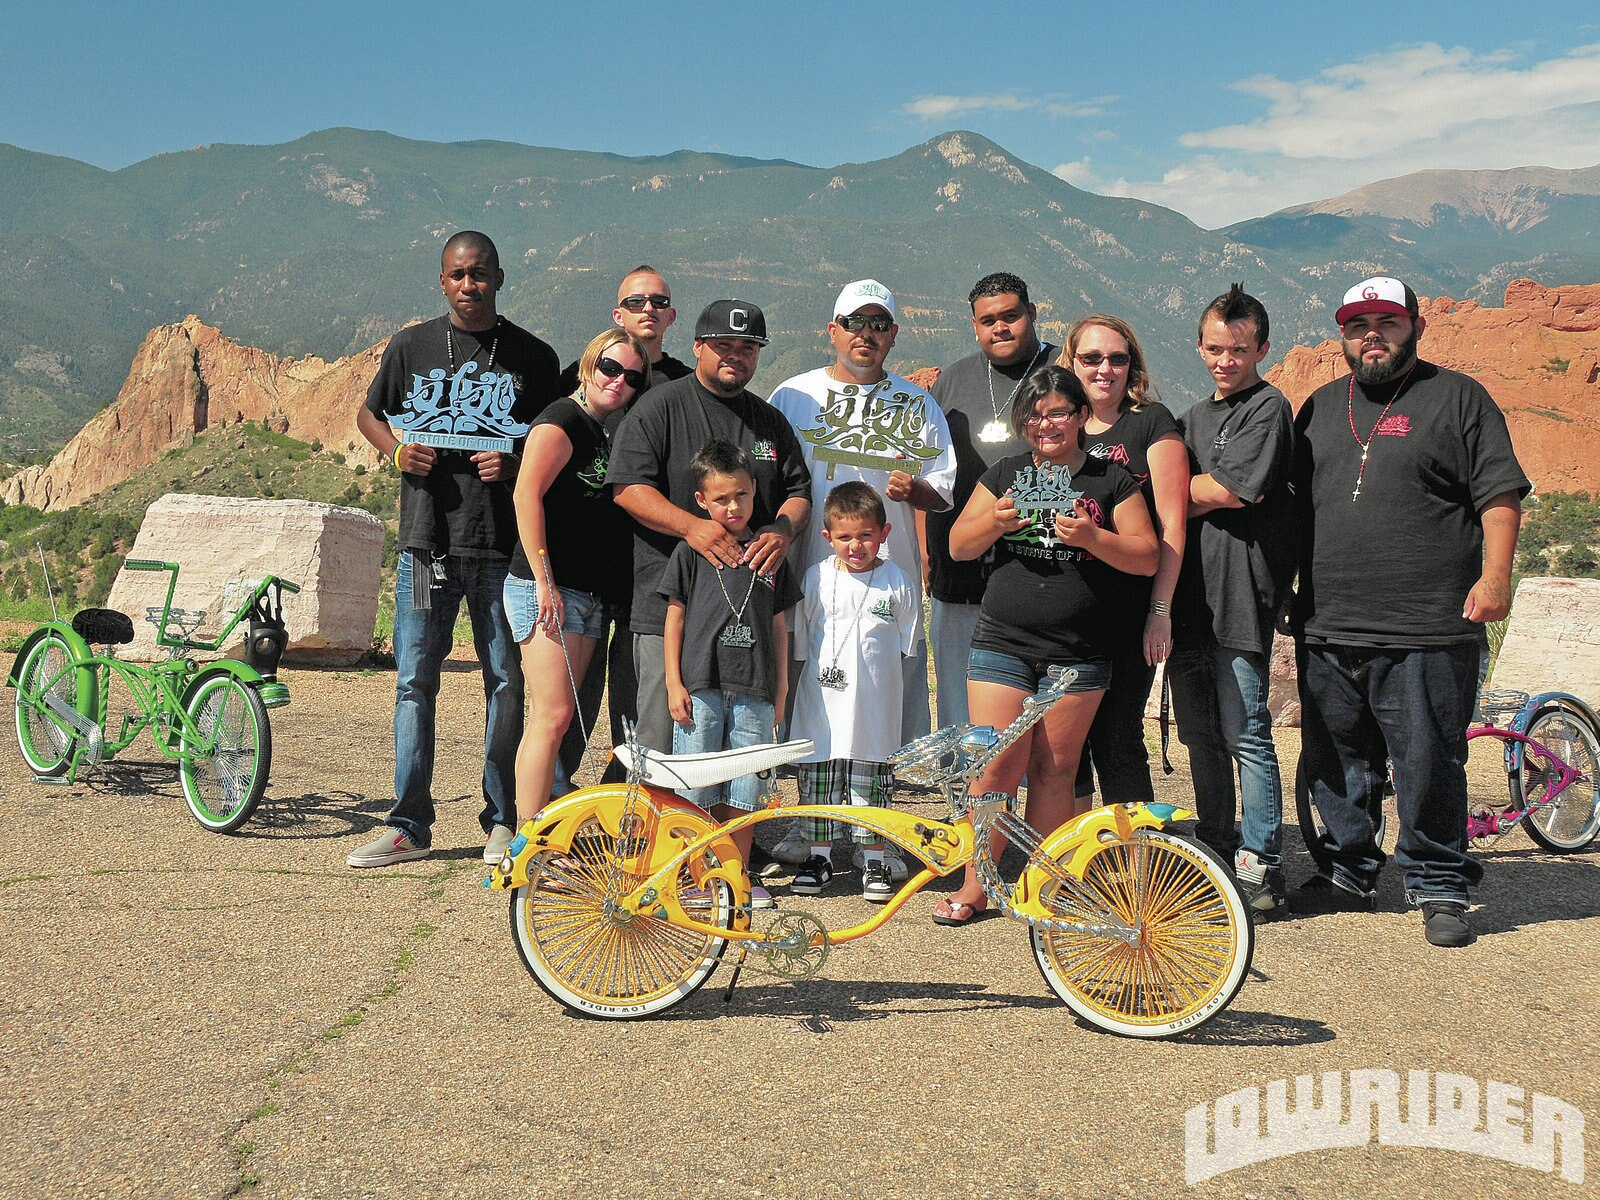 1206-lrmp-01-o-5150-a-state-of-mind-bicycle-club1